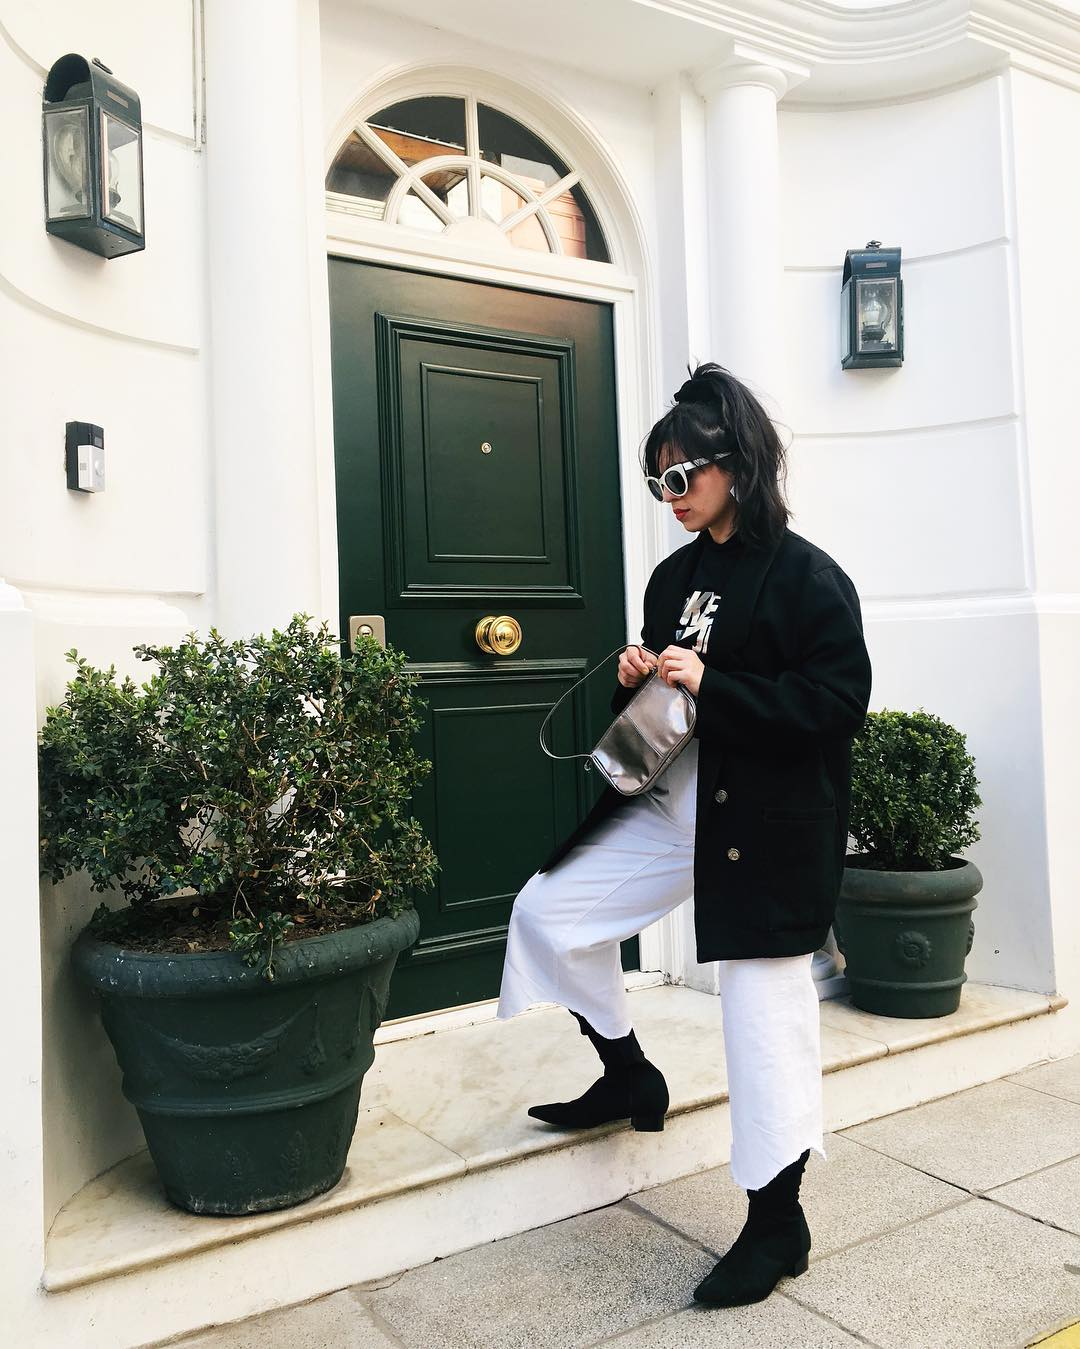 The coat is from Salvation Army, shirt is Nike Japan, and the purse is a vintage find from the charitable organization  Feria Misericordia  in Buenos Aires.